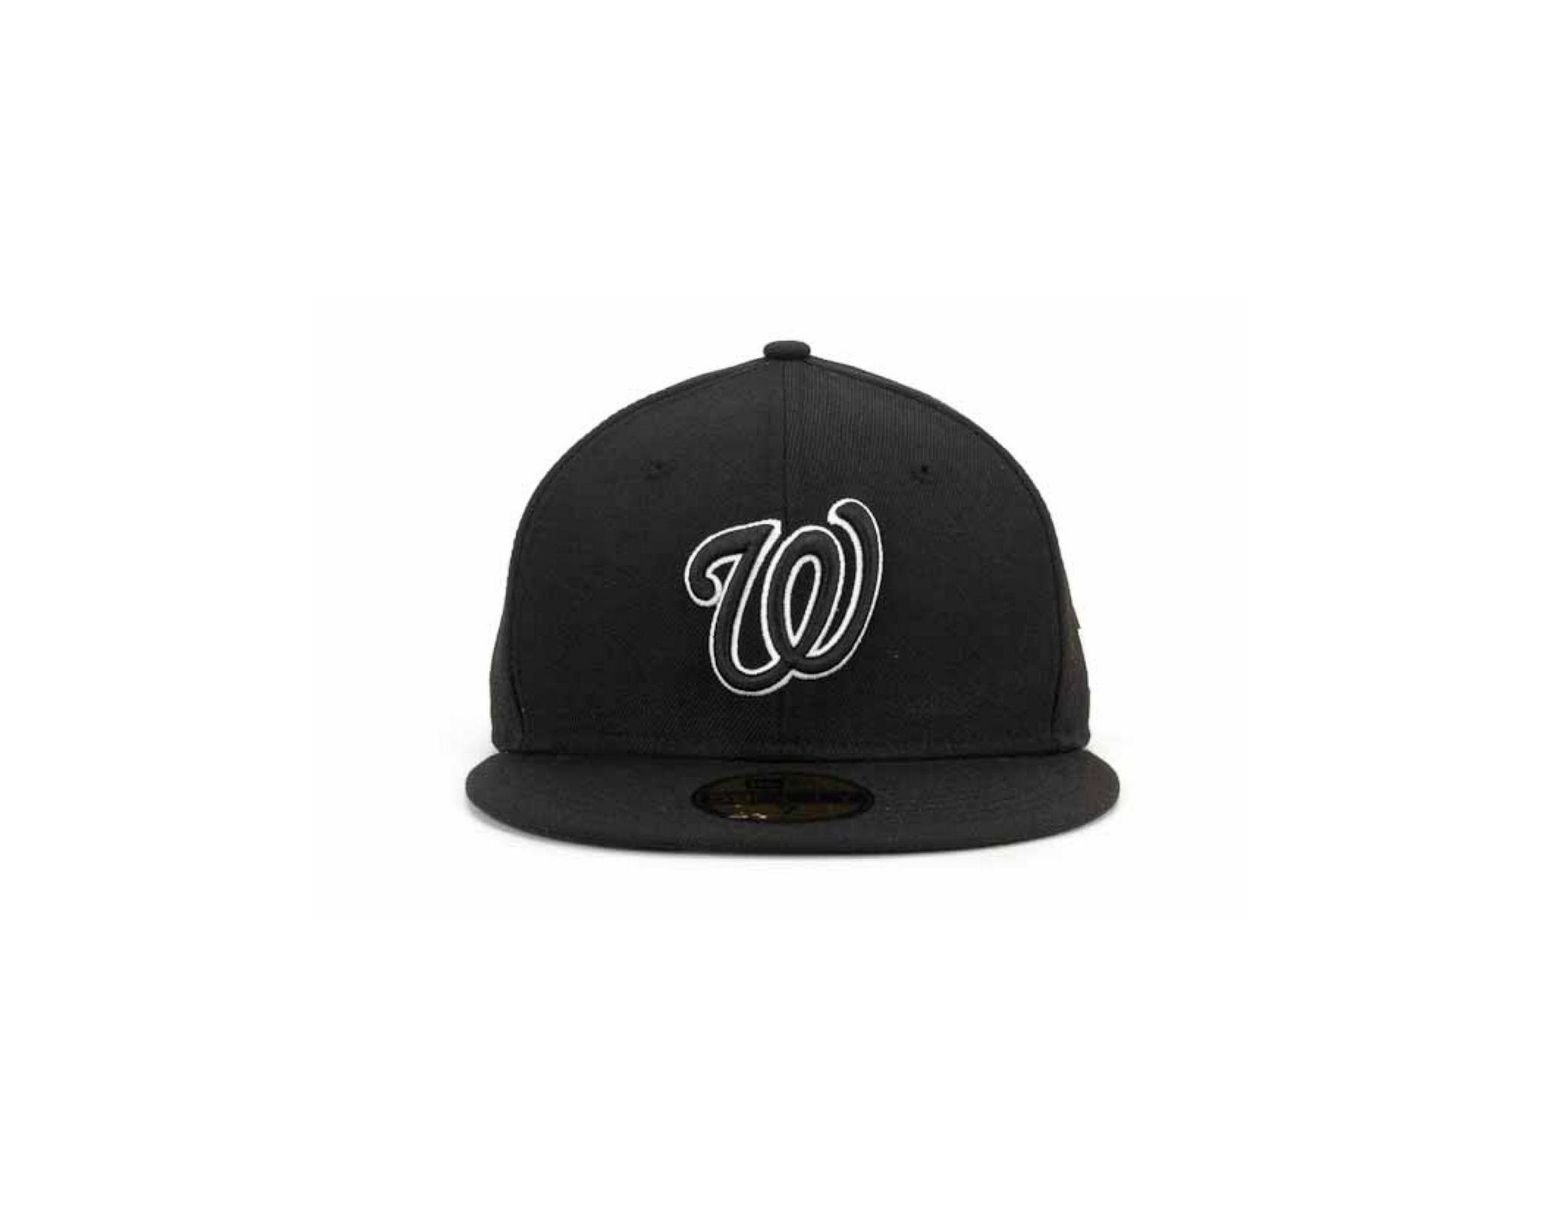 reputable site fb84f 40a74 KTZ Washington Nationals Black And White Fashion 59fifty Cap in Black for  Men - Lyst